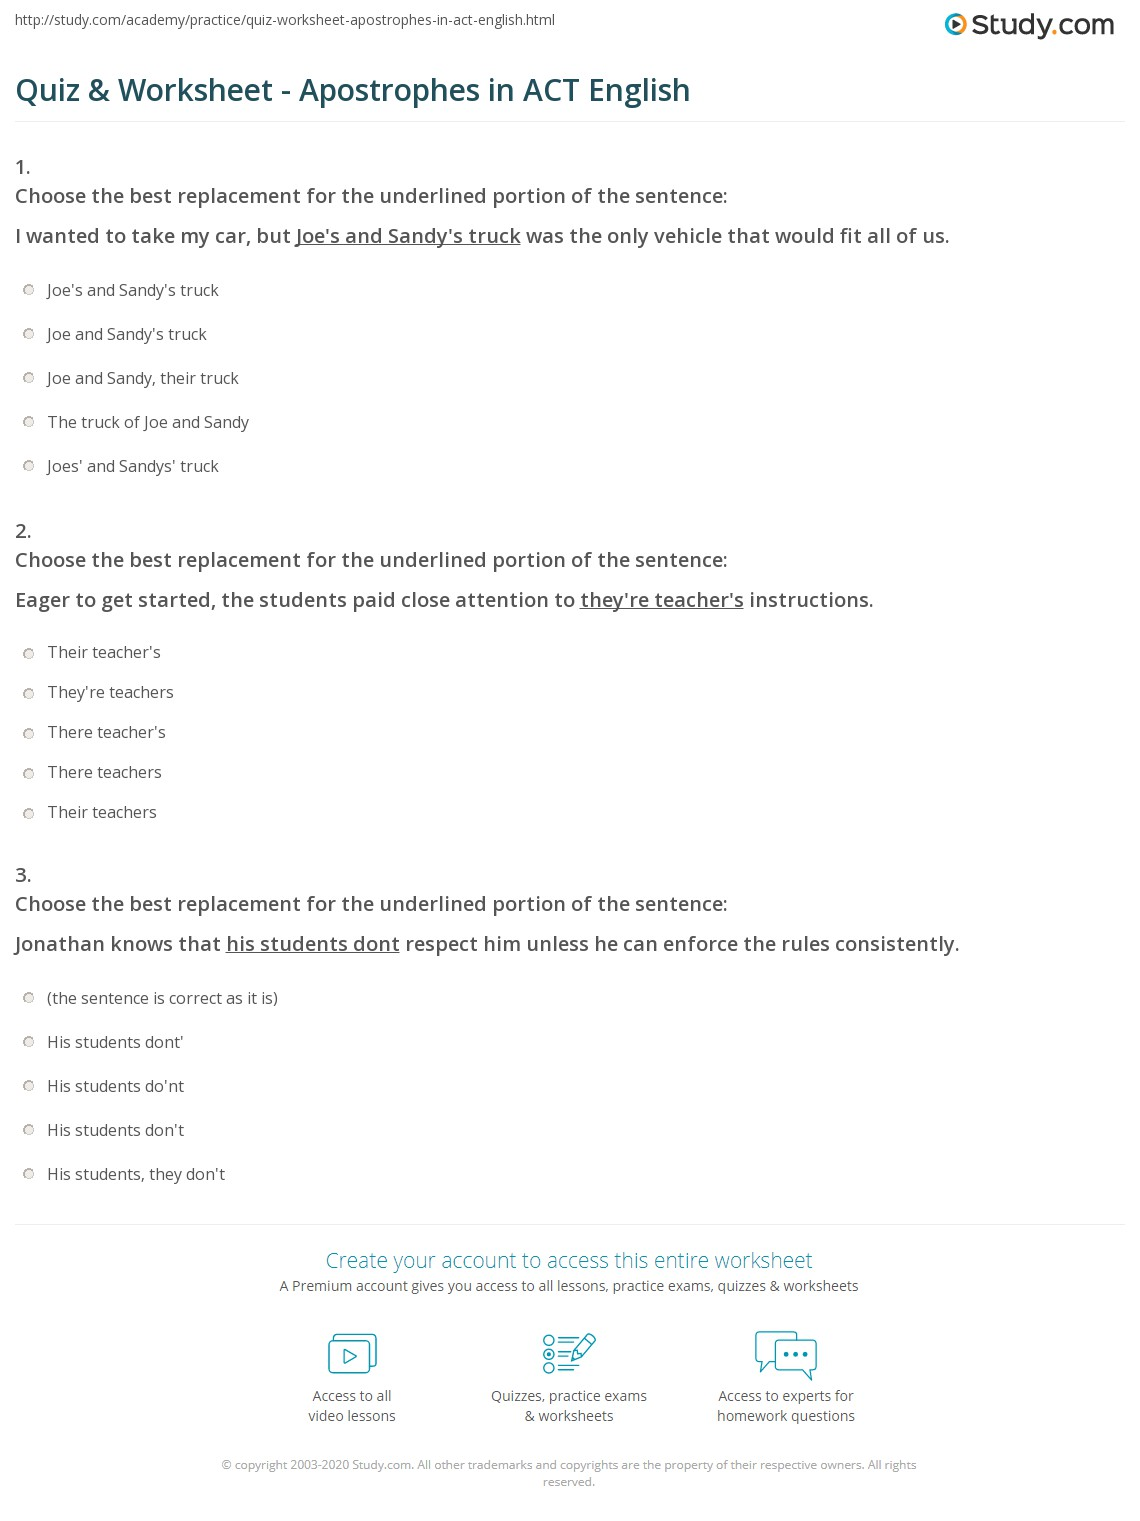 hight resolution of Quiz \u0026 Worksheet - Apostrophes in ACT English   Study.com